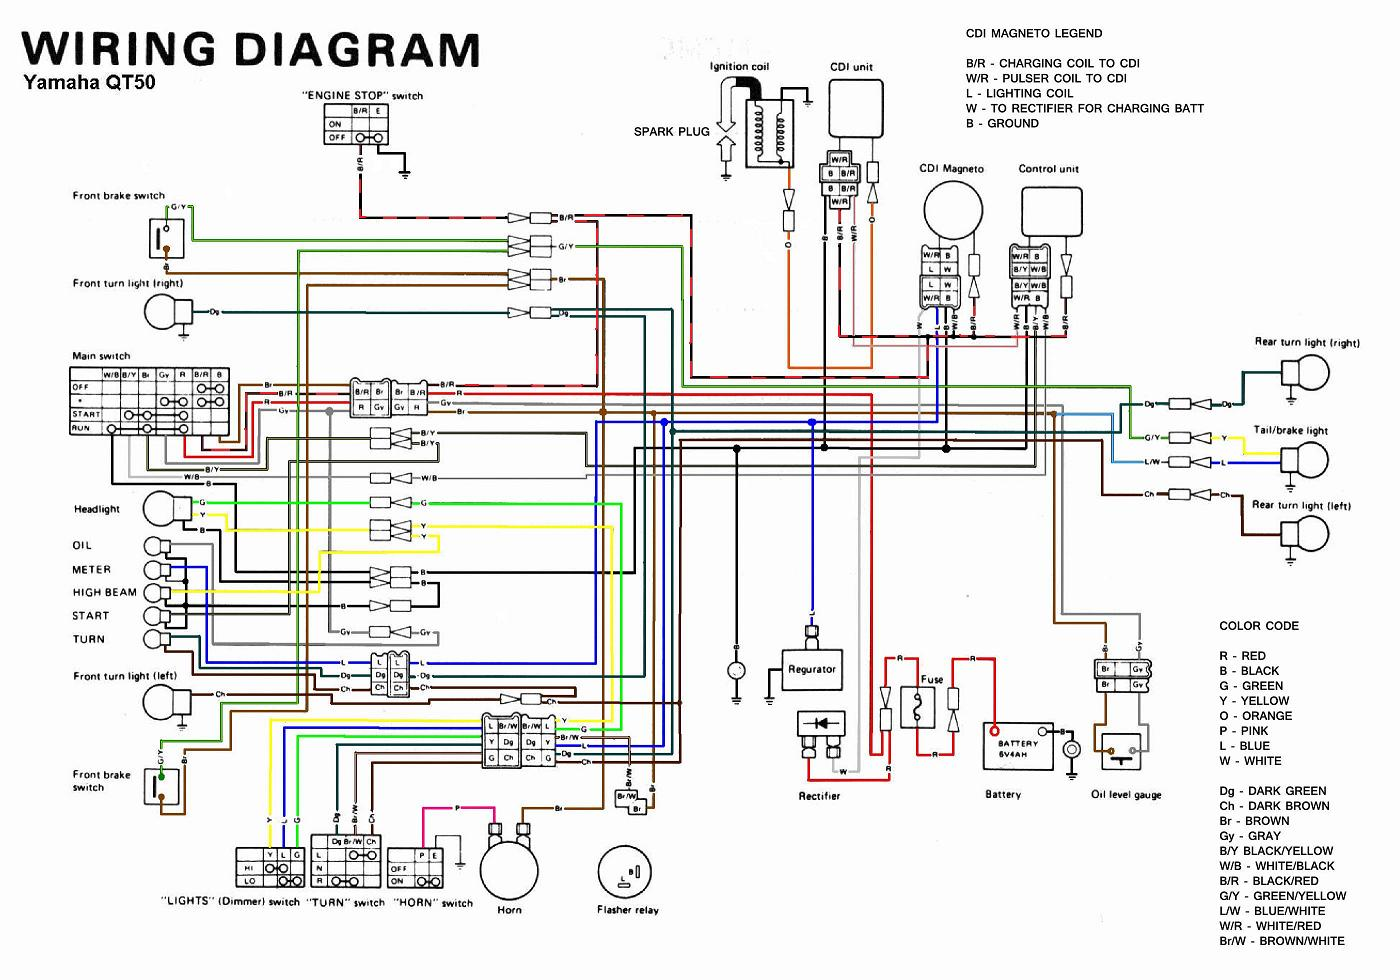 Yamaha Wiring Schematic Data Wiring Schema Kenwood Wiring Harness Diagram  Yamaha G1 Wiring Harness Diagram